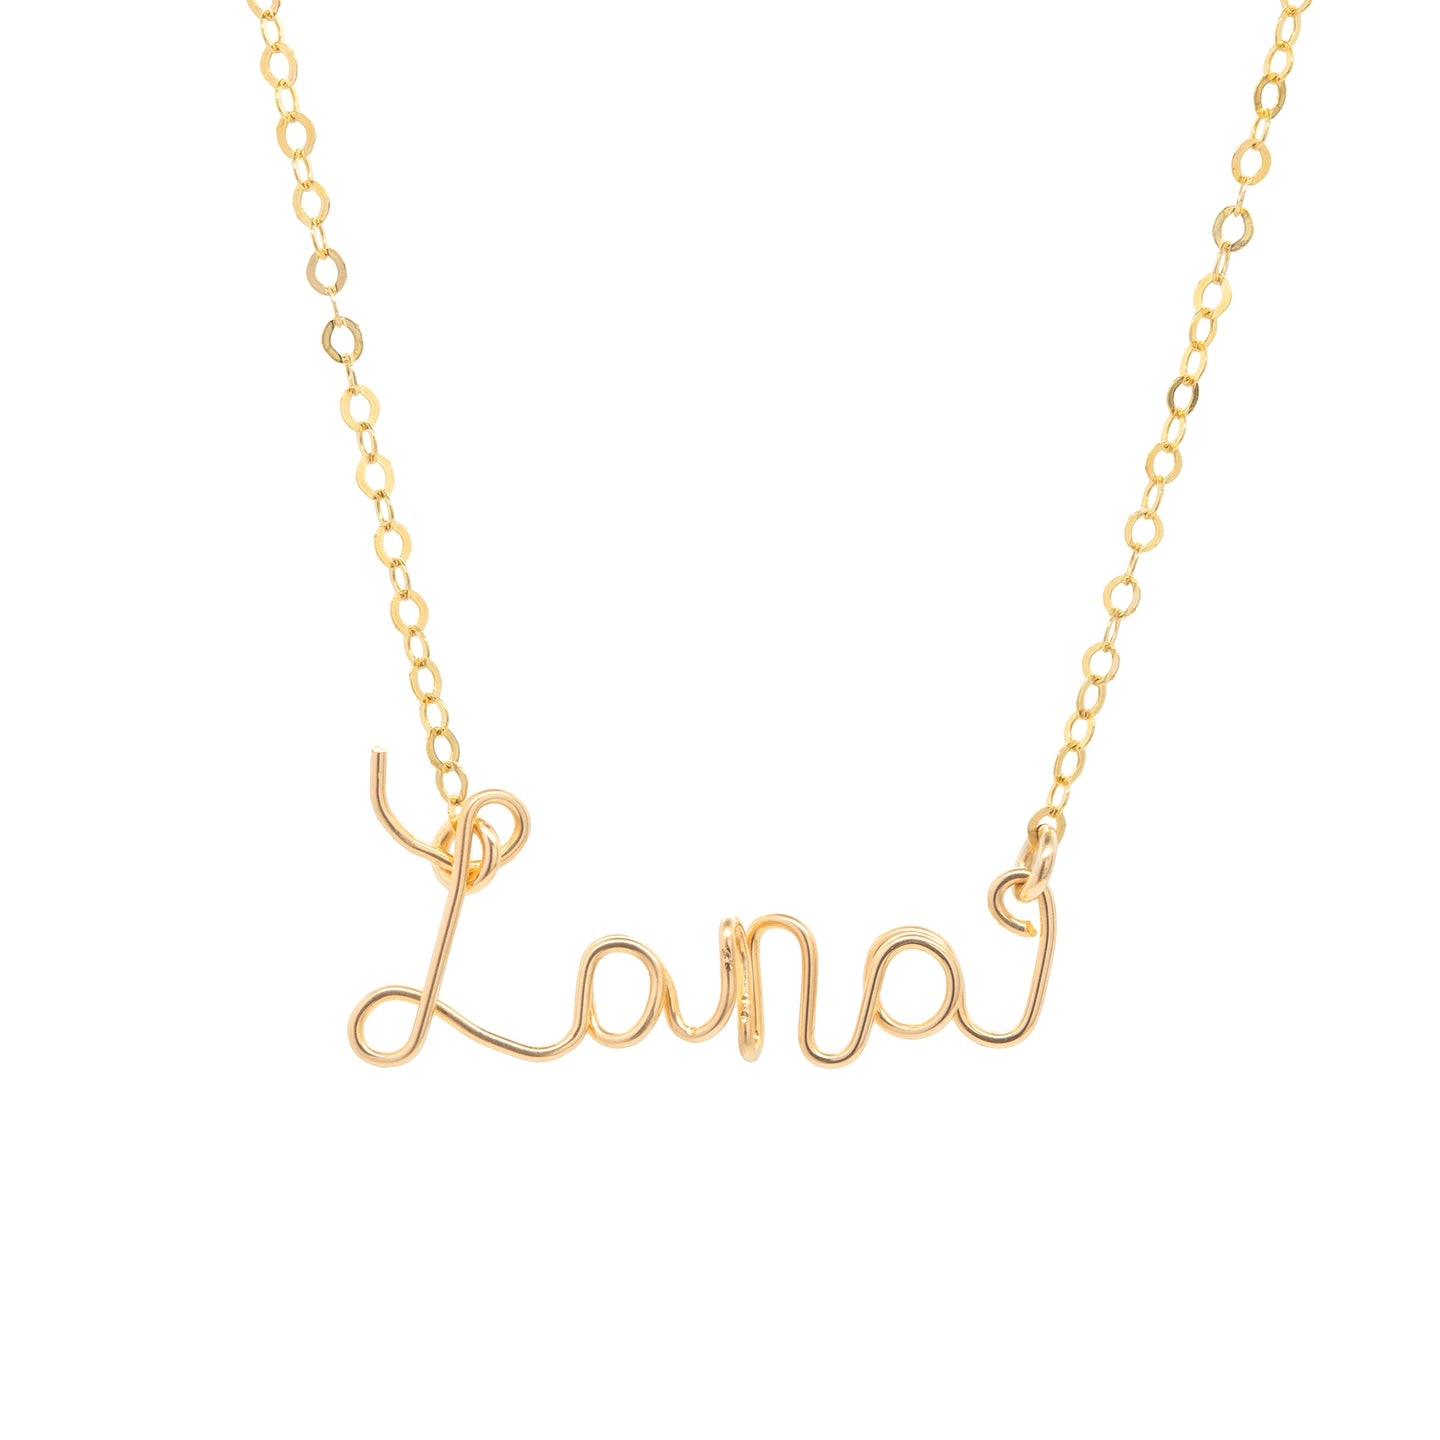 14k gold-filled Cursive Name Necklace